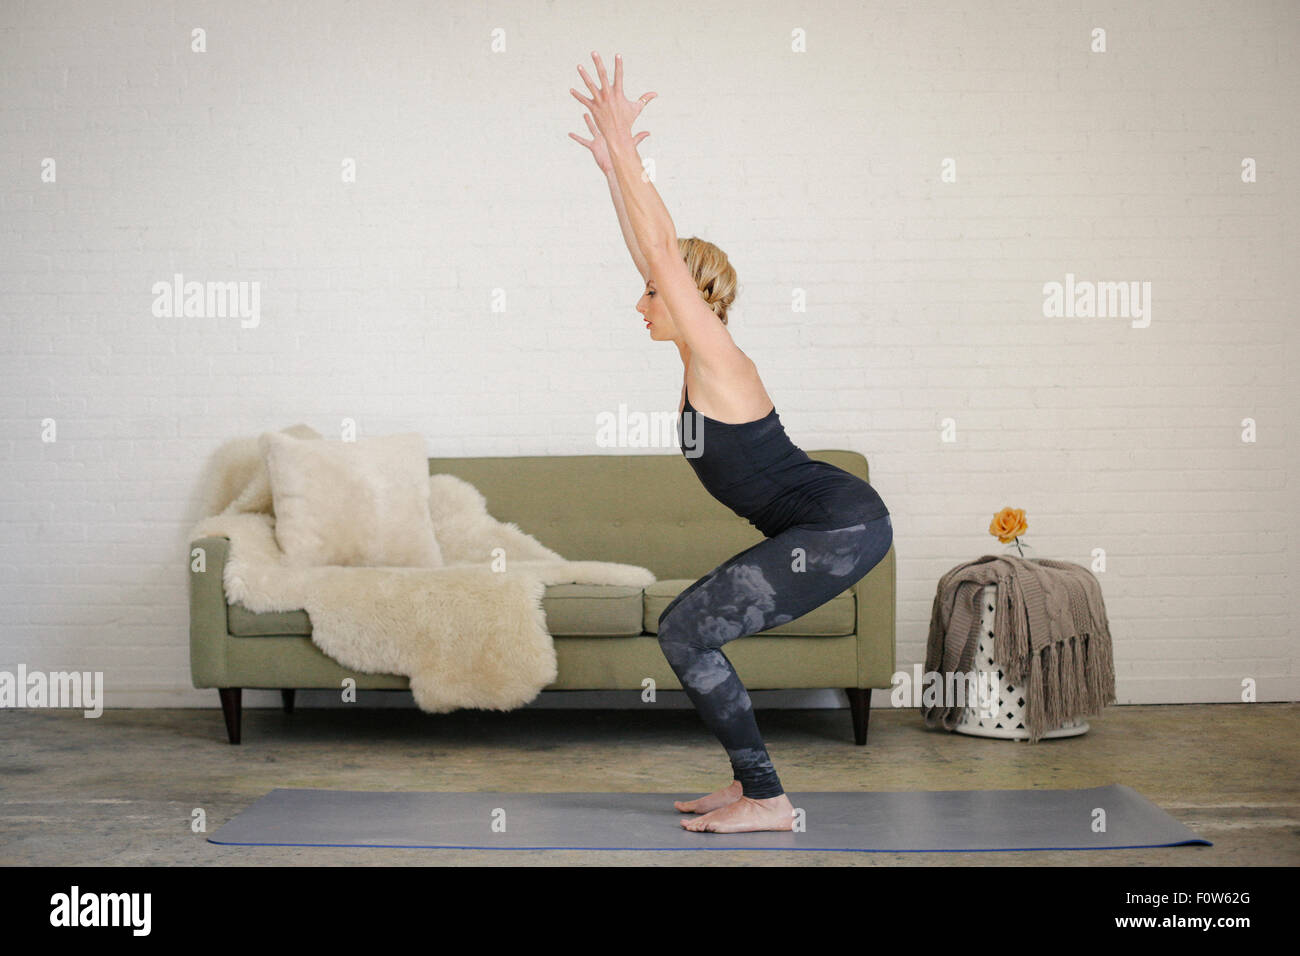 A blonde woman in leotard and leggings, standing on a yoga mat in a room, doing yoga, squatting down with her arms - Stock Image